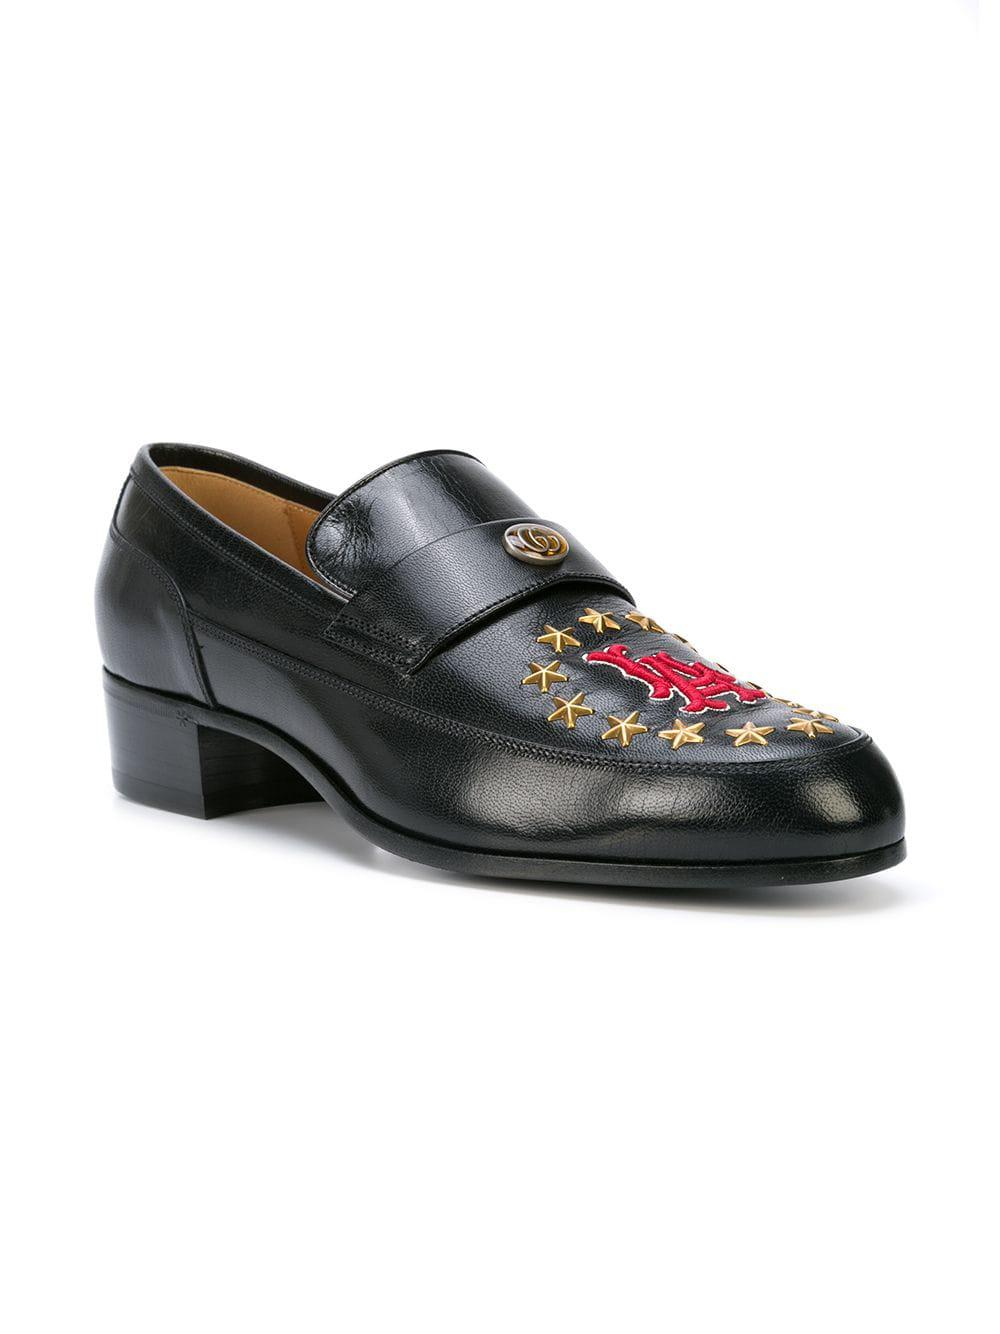 24f12d550aa Lyst - Gucci Leather Loafer With La Patch in Black for Men